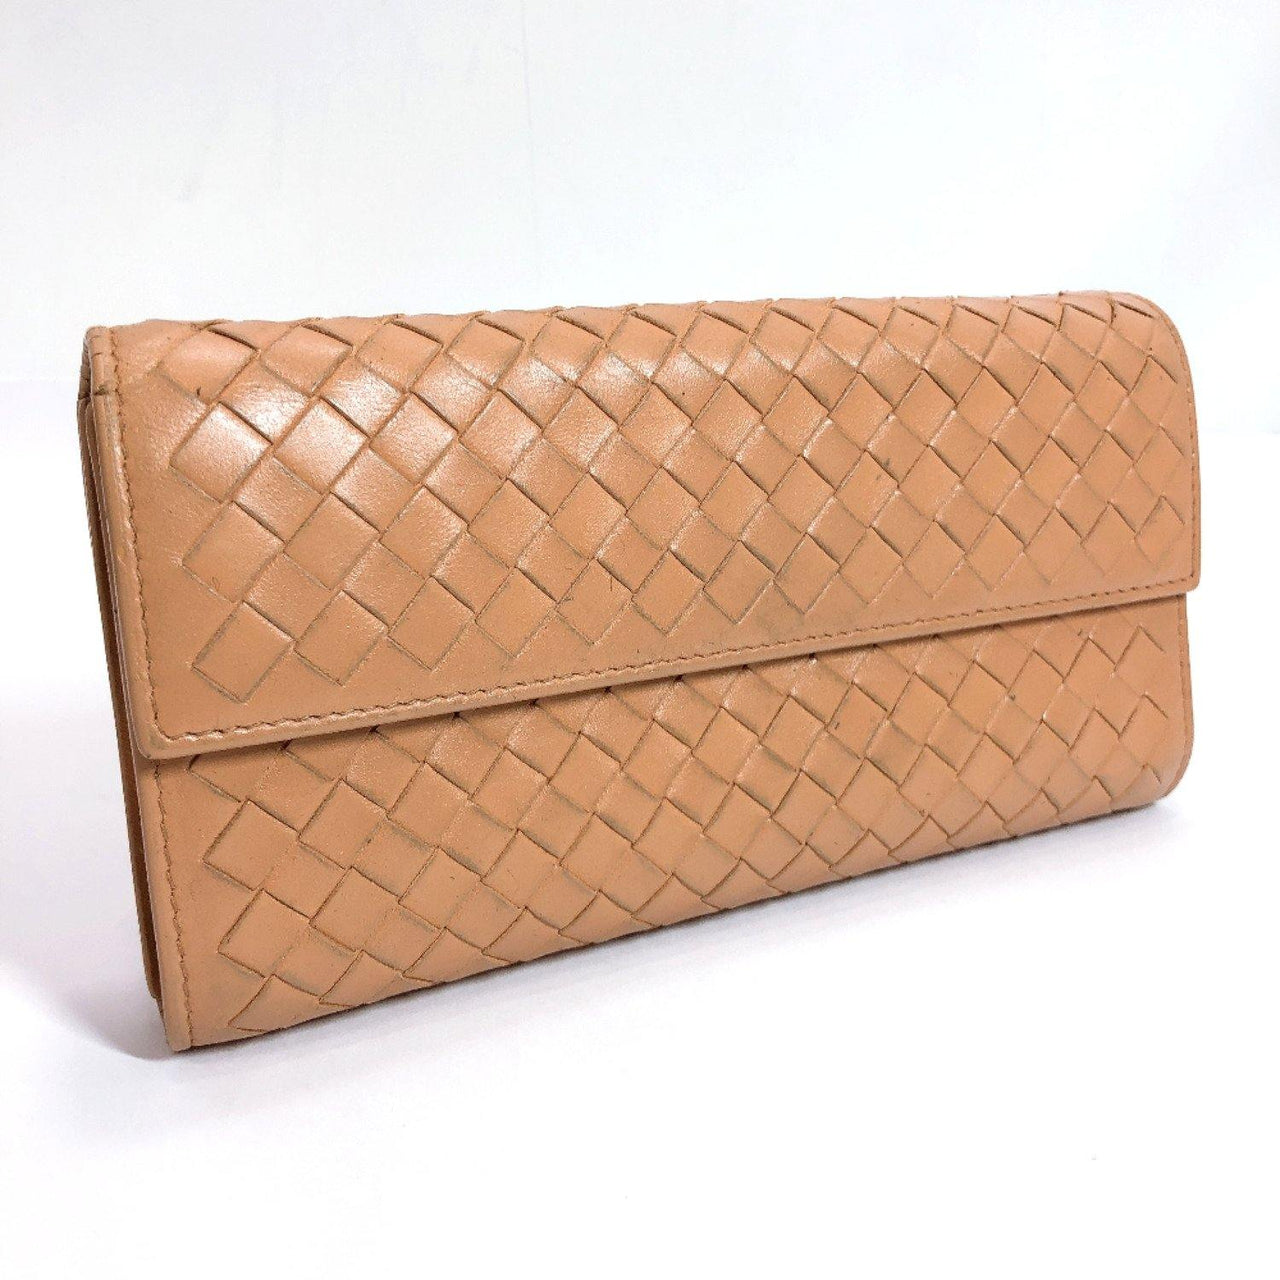 BOTTEGAVENETA purse Intrecciato leather beige Women Used